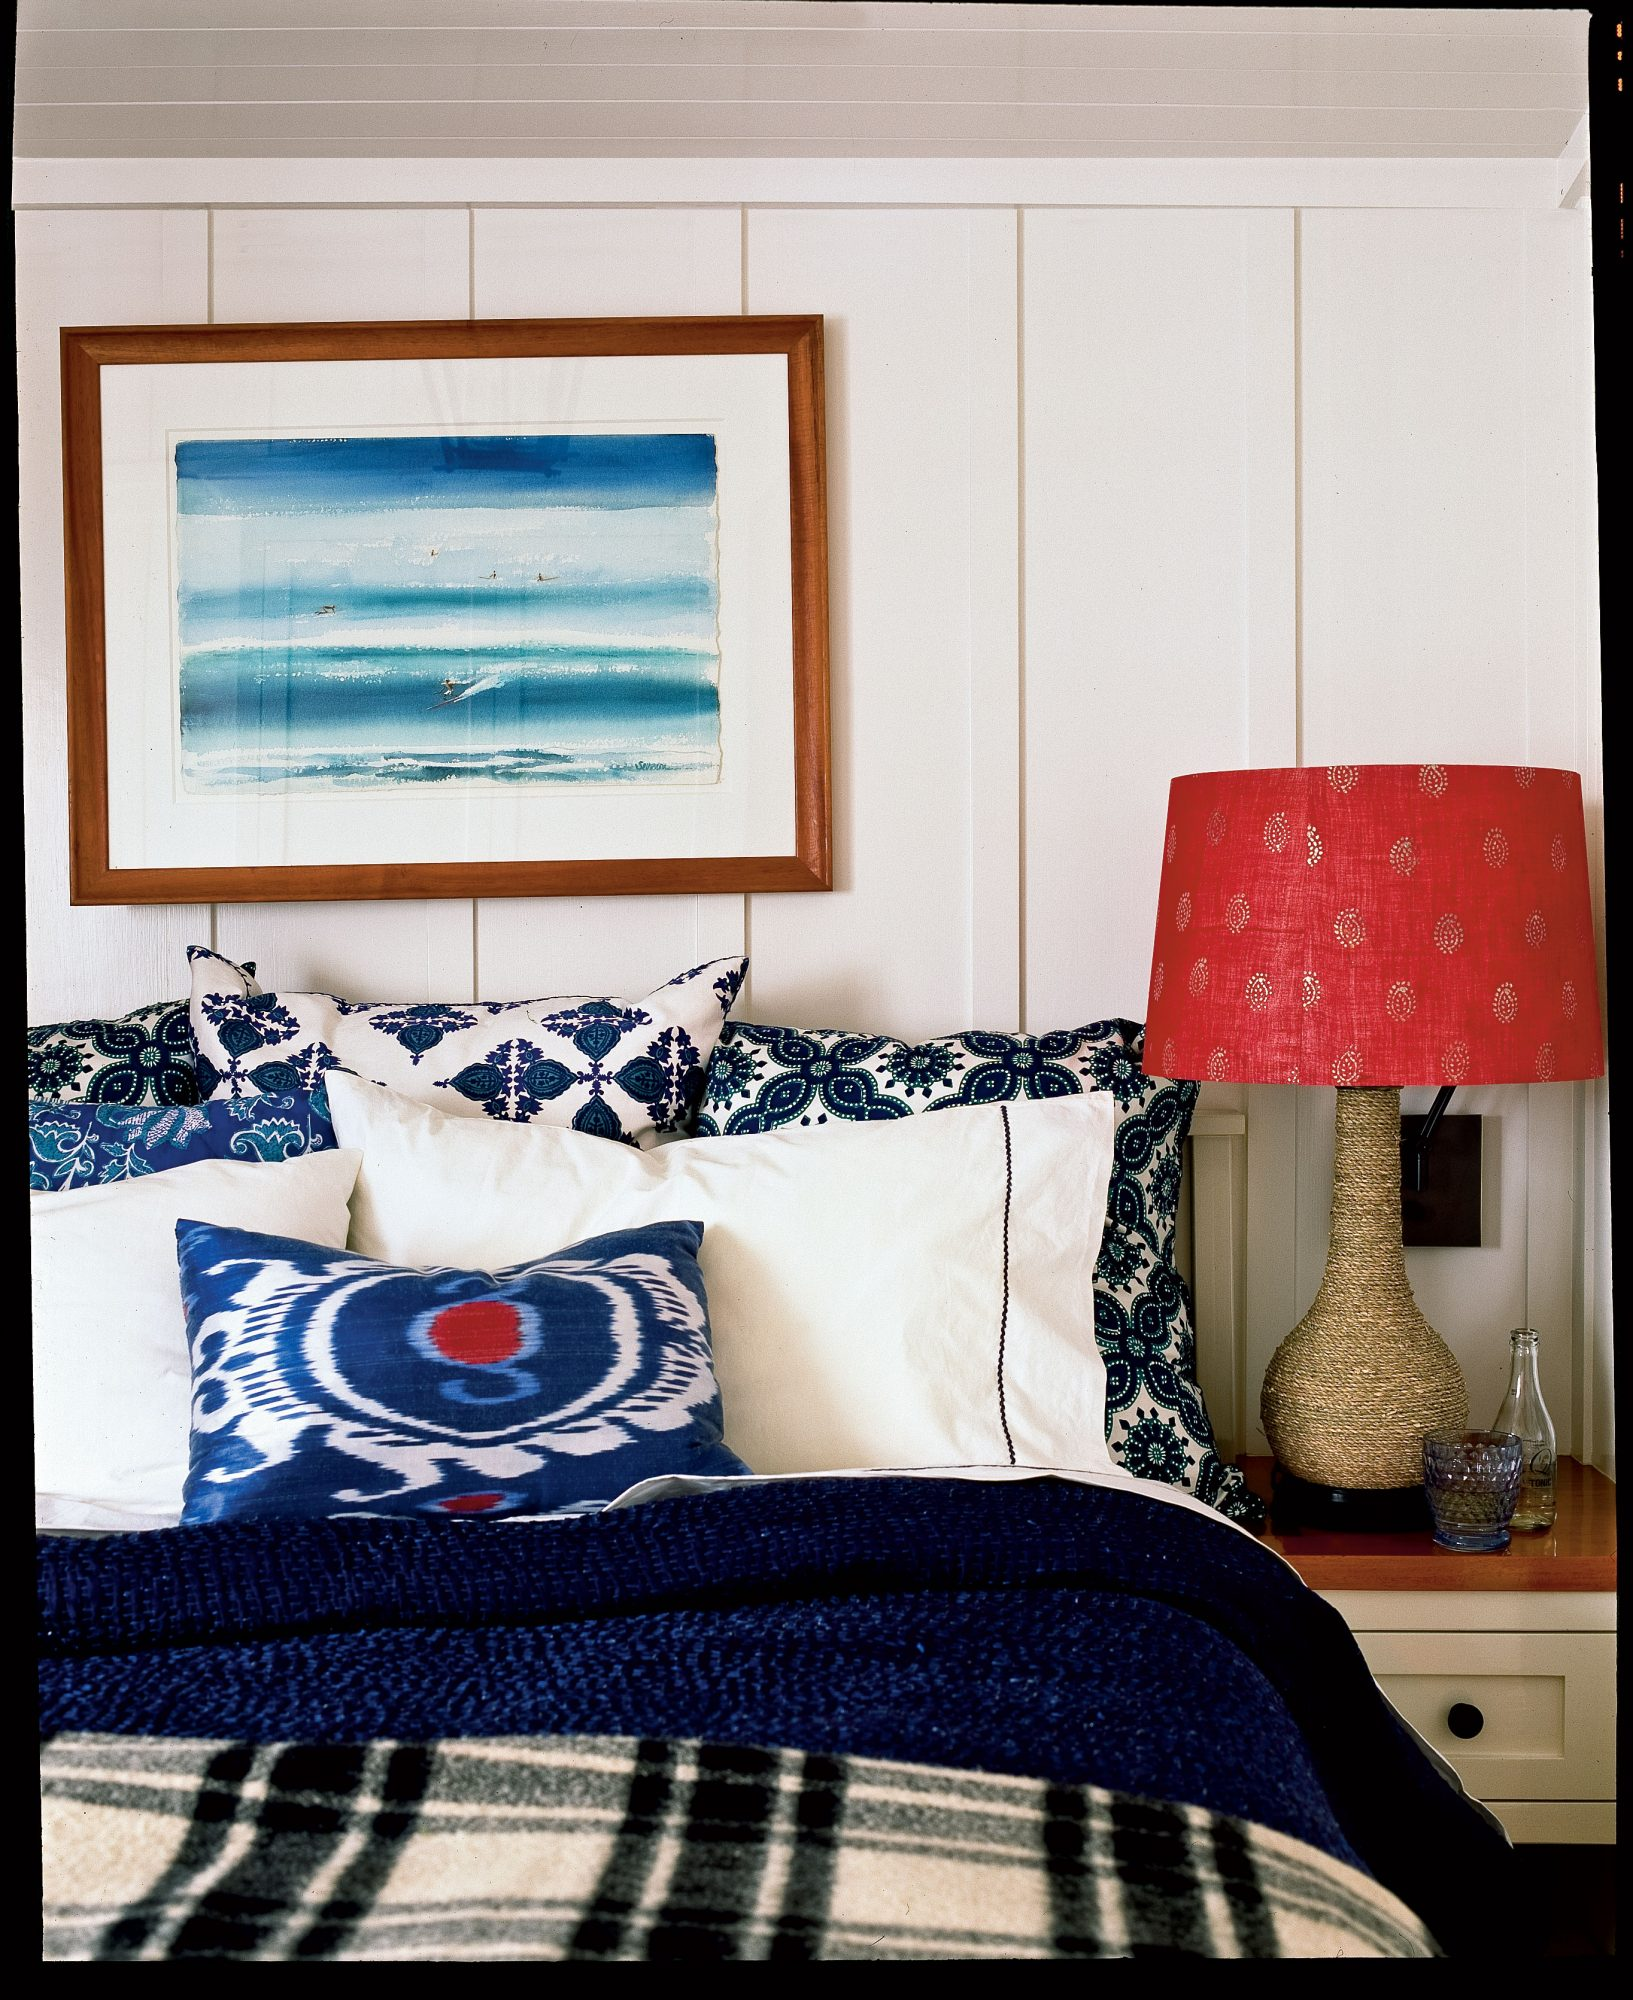 A John Severson watercolor painting of Waikiki Beach hangs above the built-in bed to bring the coast in to the master bedroom.